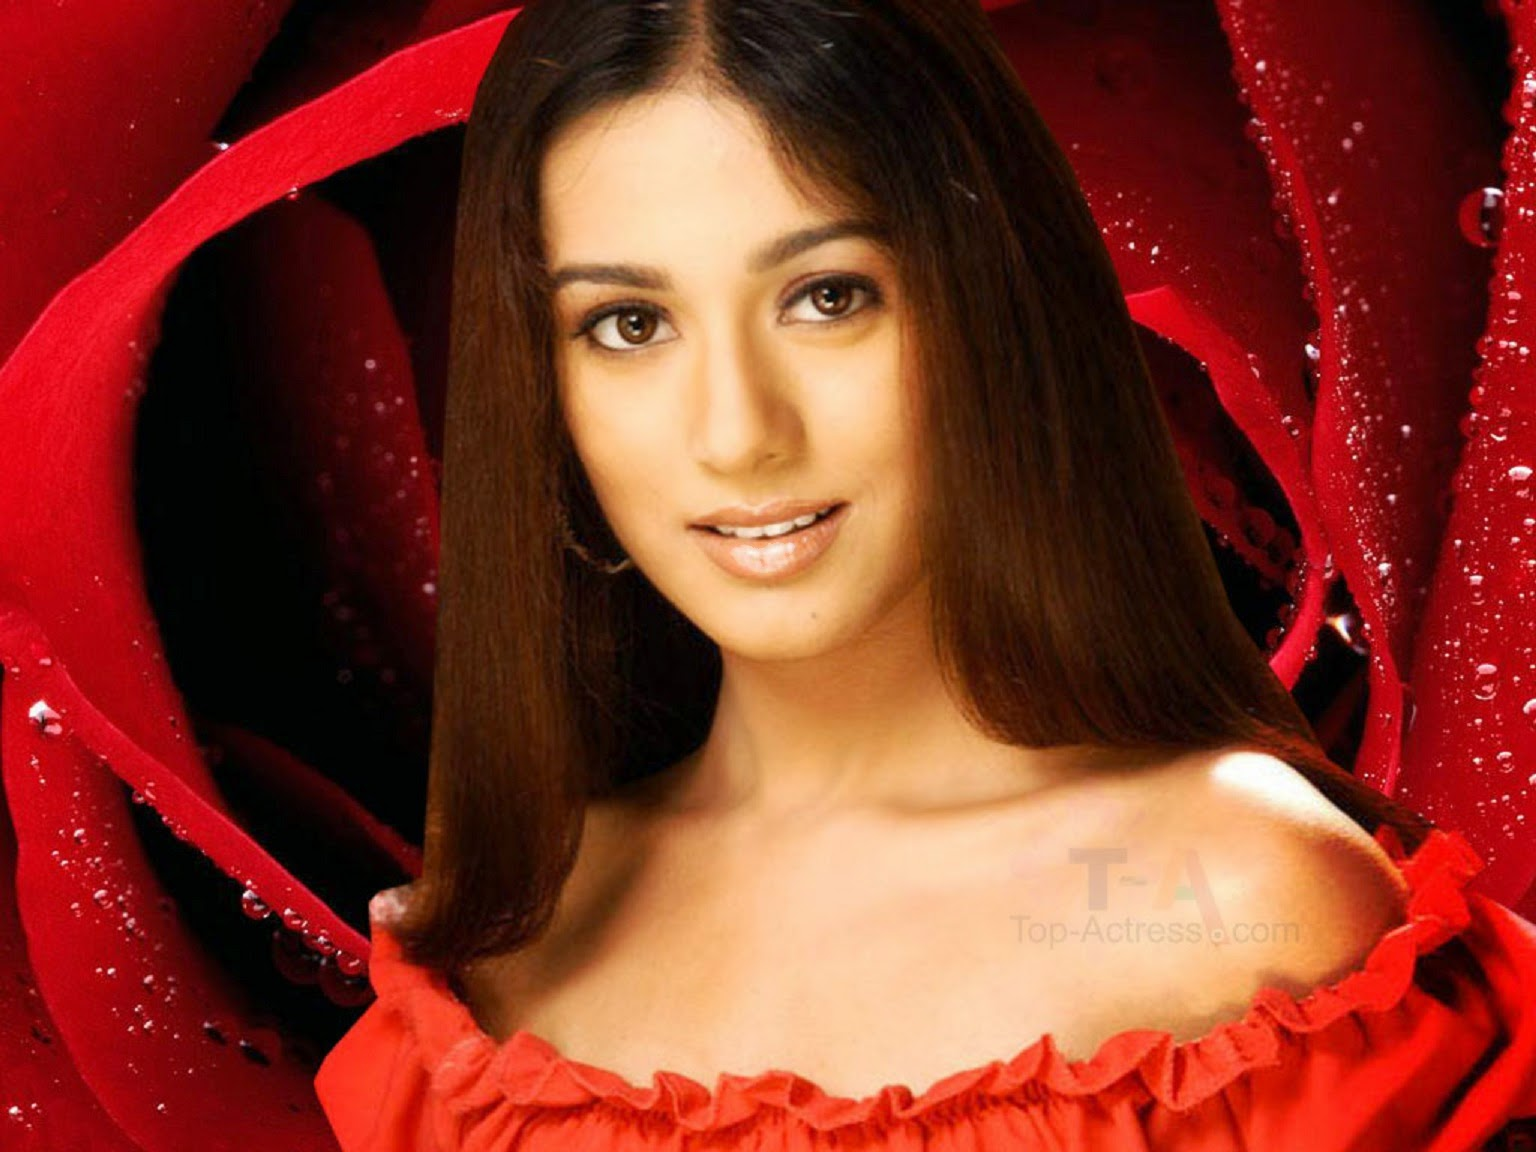 star hd wallpapers free download: amrita rao hd wallpapers free download